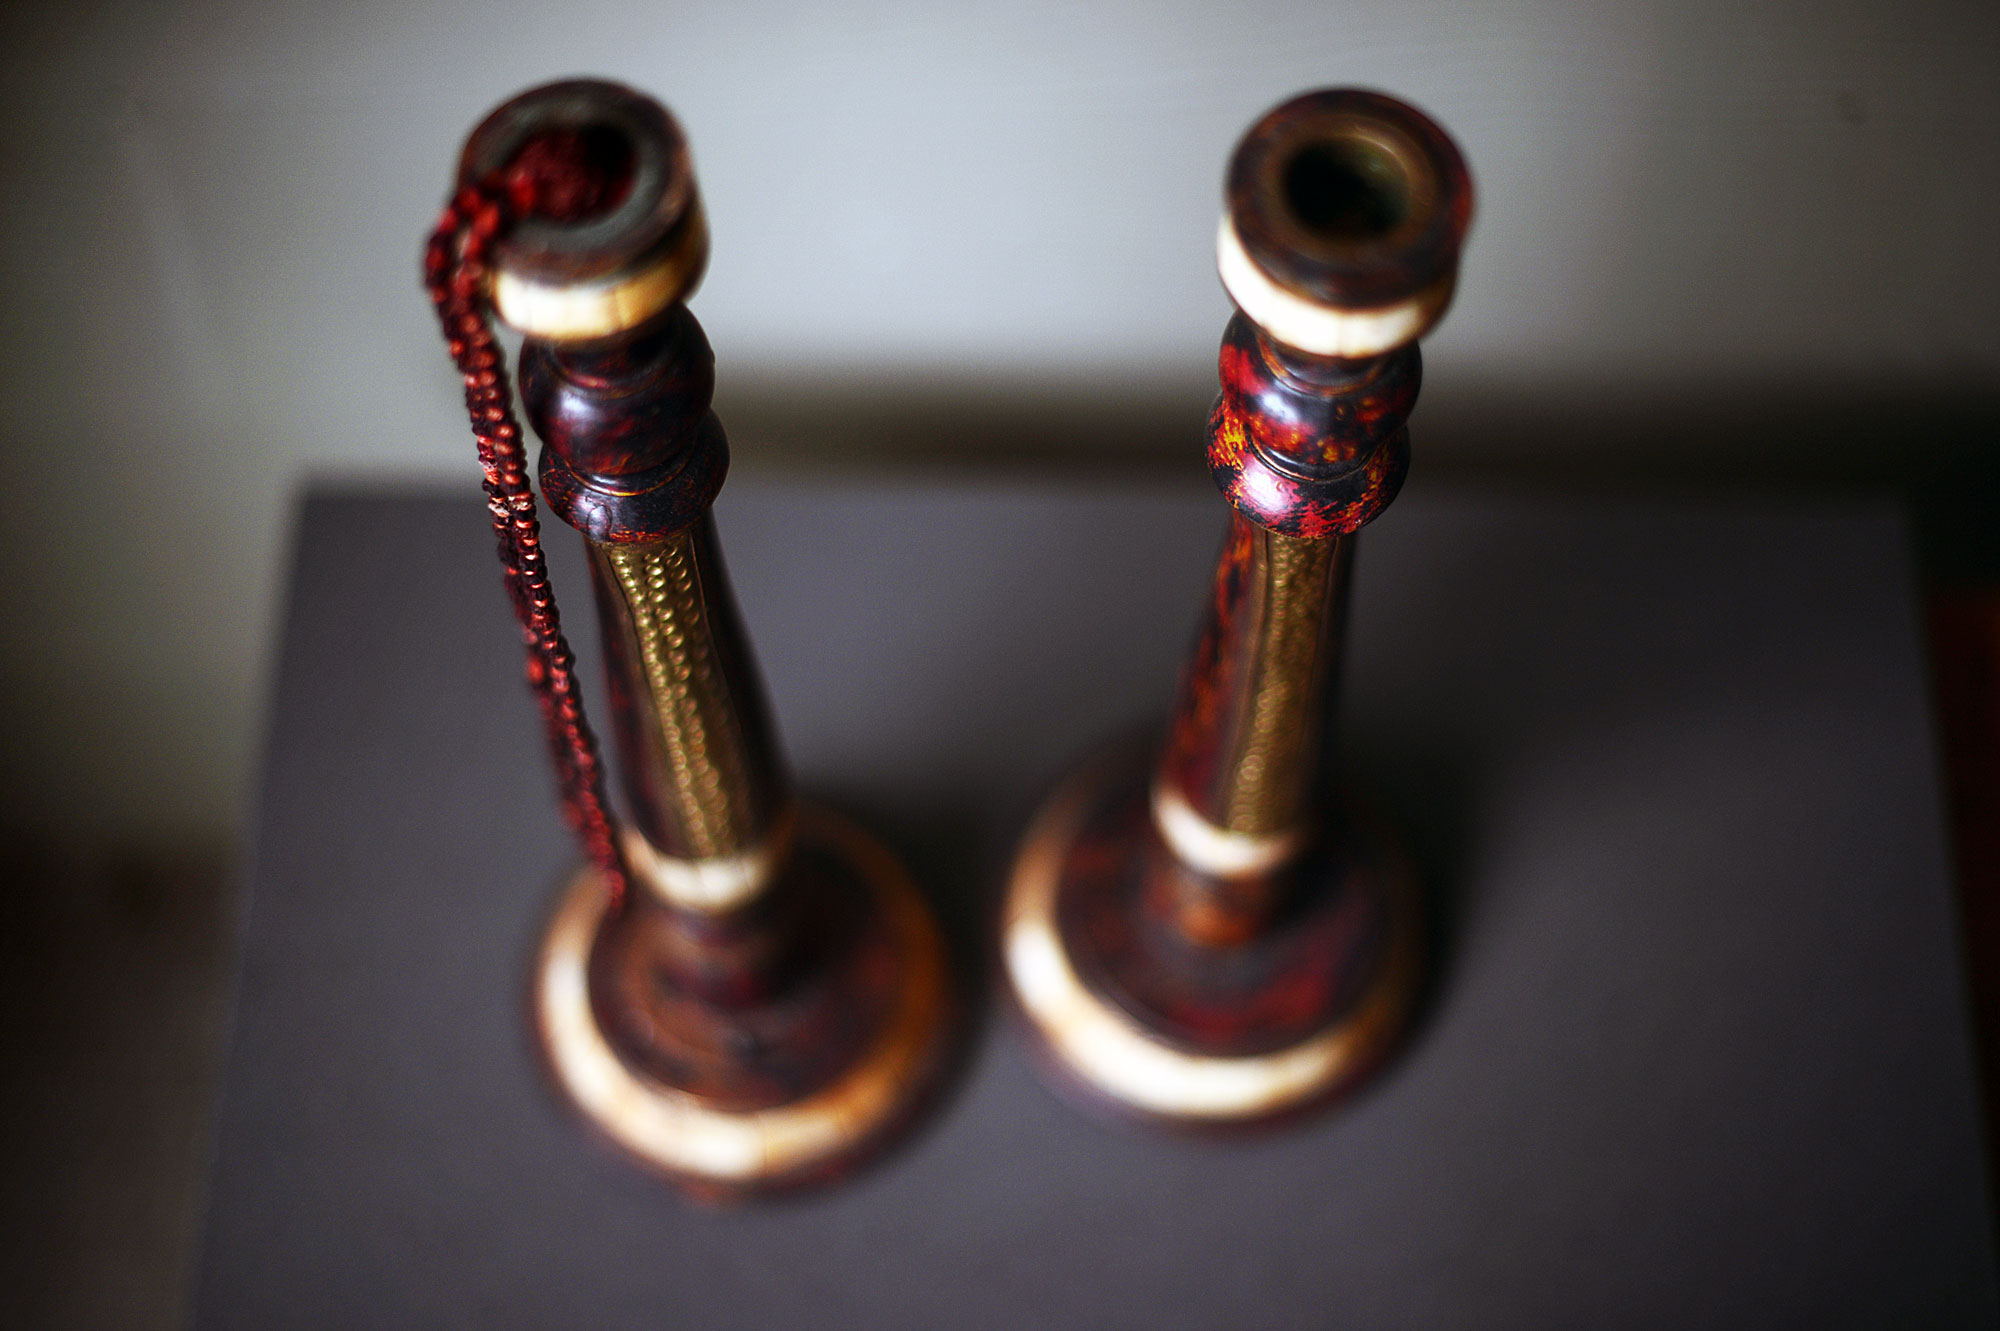 A pair of antique Indian candlesticks I bought on a whim a few months ago. They'll go on the new mantel.